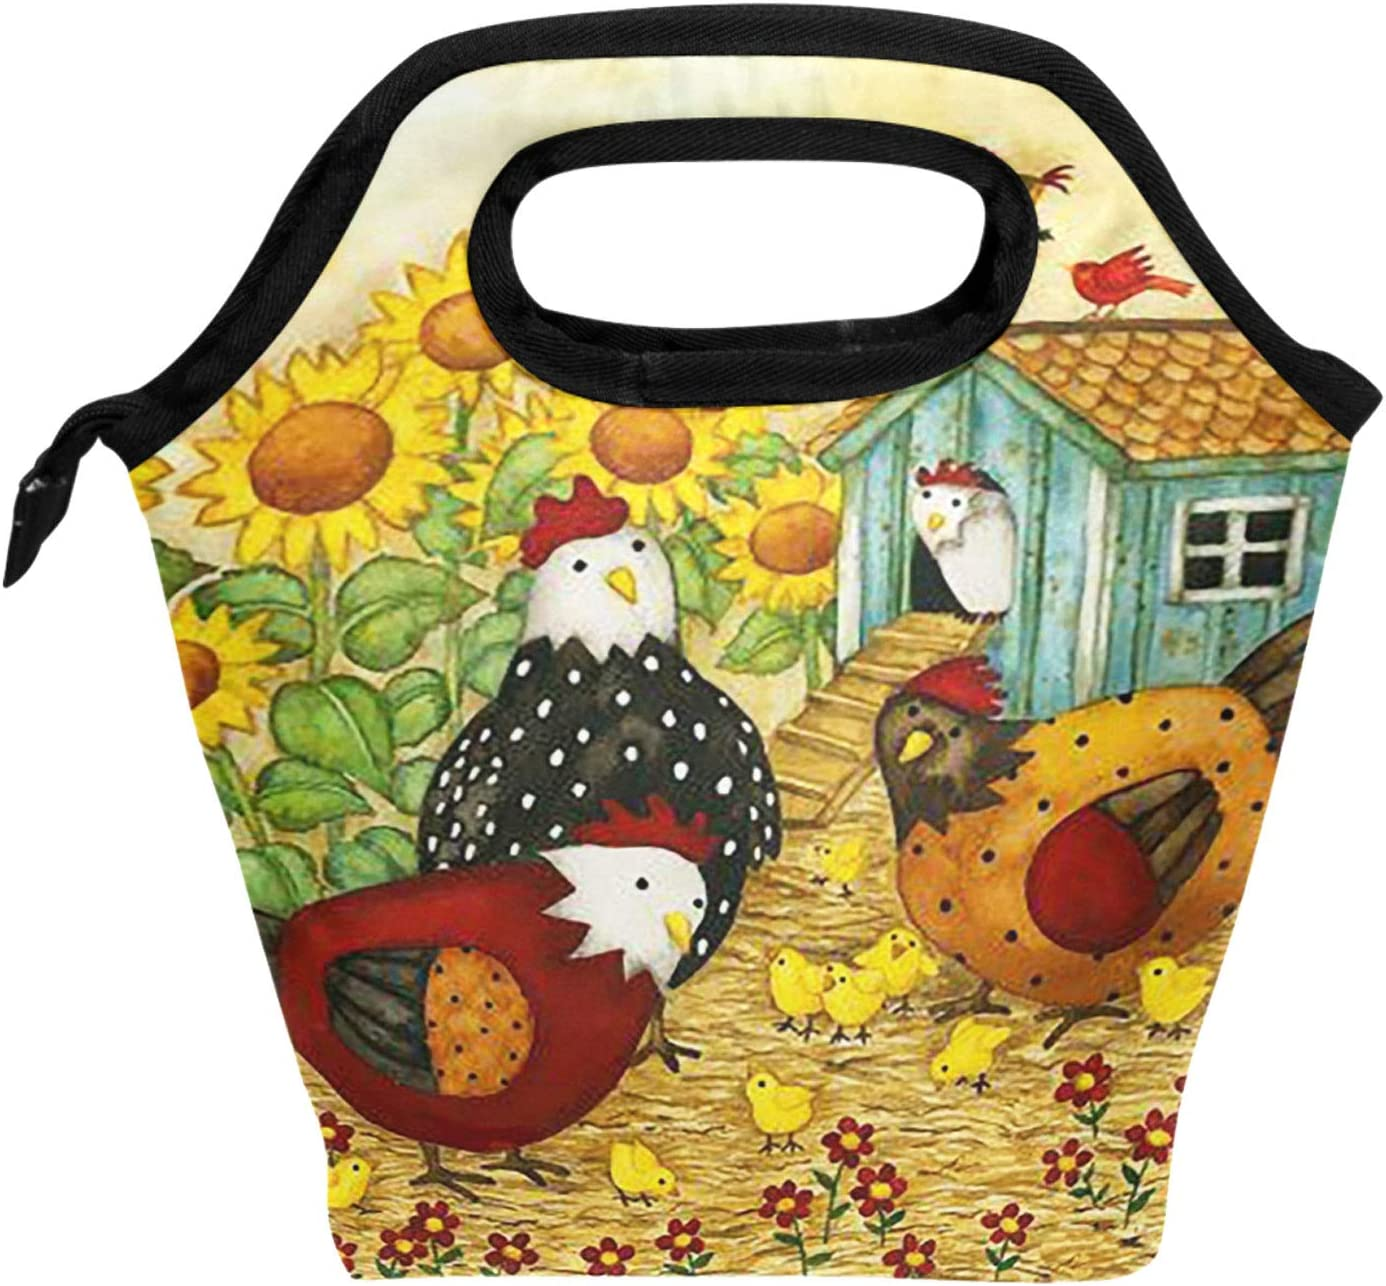 ALAZA Lunch Tote Bag Nature Farm Life Rooster Hen Chickens Insulated Cooler Thermal Reusable Bag, Sunflower Bird Country Rooster Summer Spring Lunch Box Portable Handbag for Men Women Kids Boys Girl